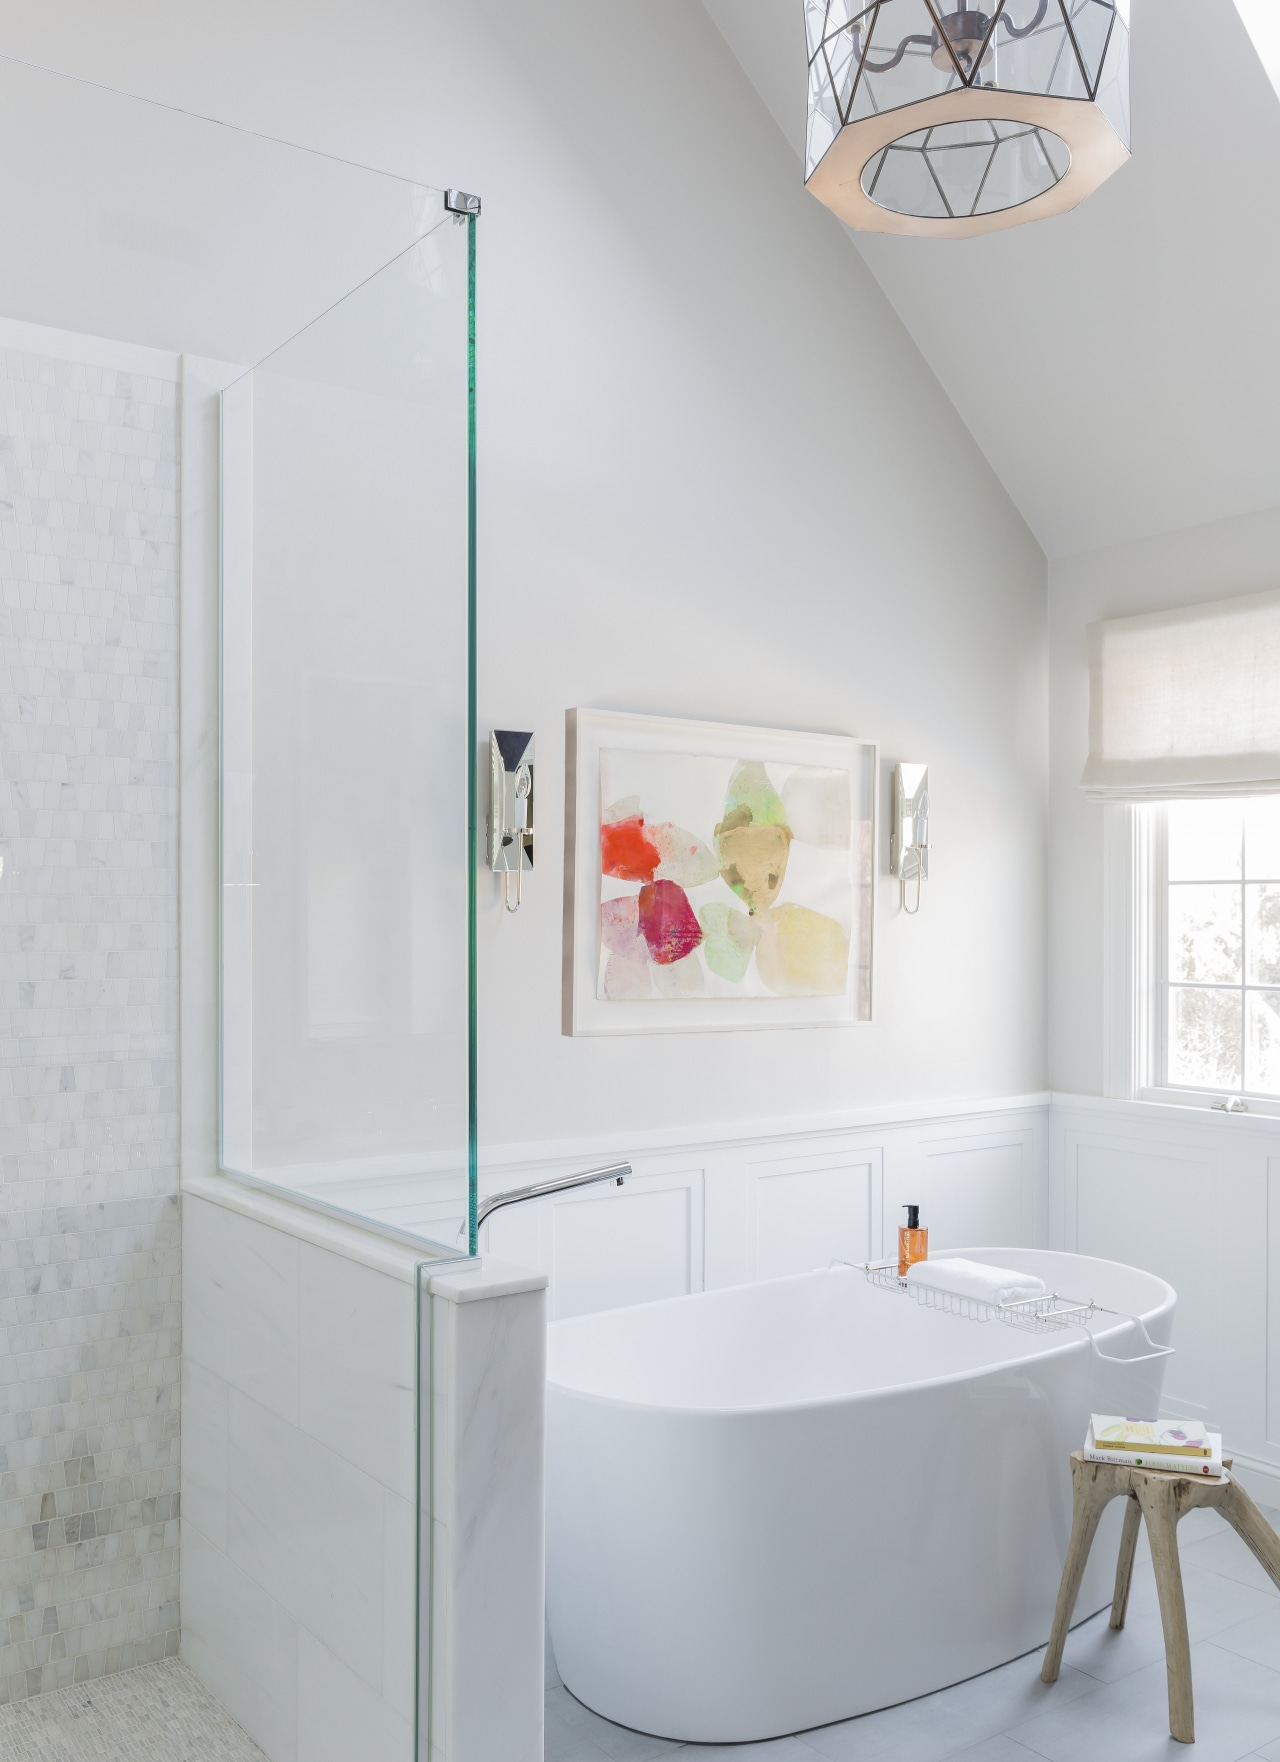 Many homeowners today are opting for a fresh, bathroom, floor, interior design, plumbing fixture, product design, room, tap, white, gray